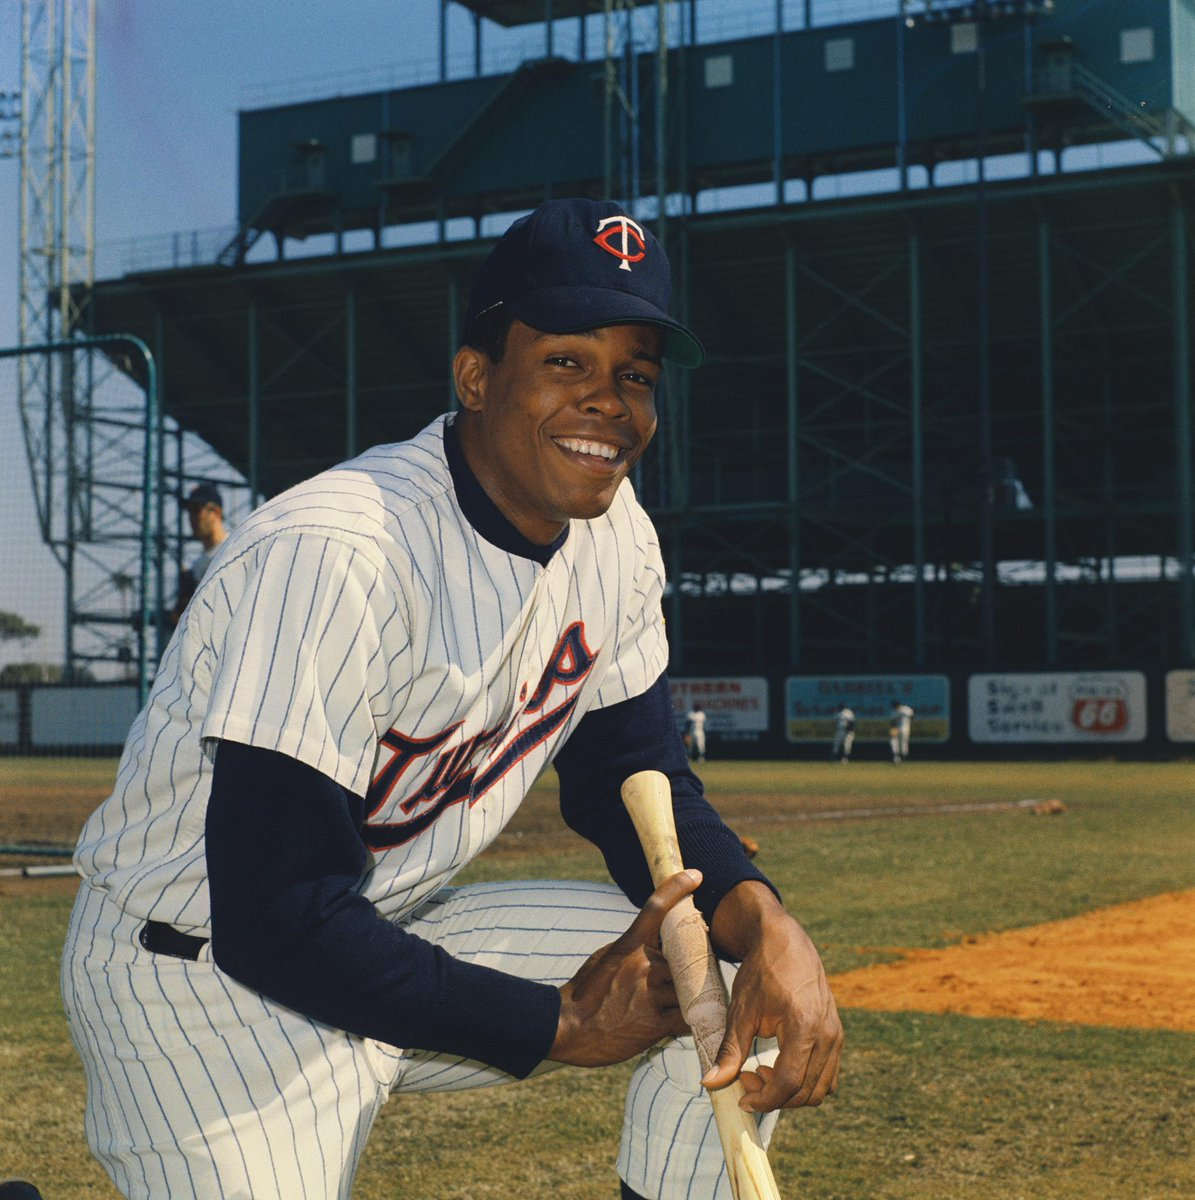 #OTD in 1987, we retired Rod Carew's #29!  RT for a chance to win Carew bobblehead. #MNTwins https://t.co/9AIGIcic3K